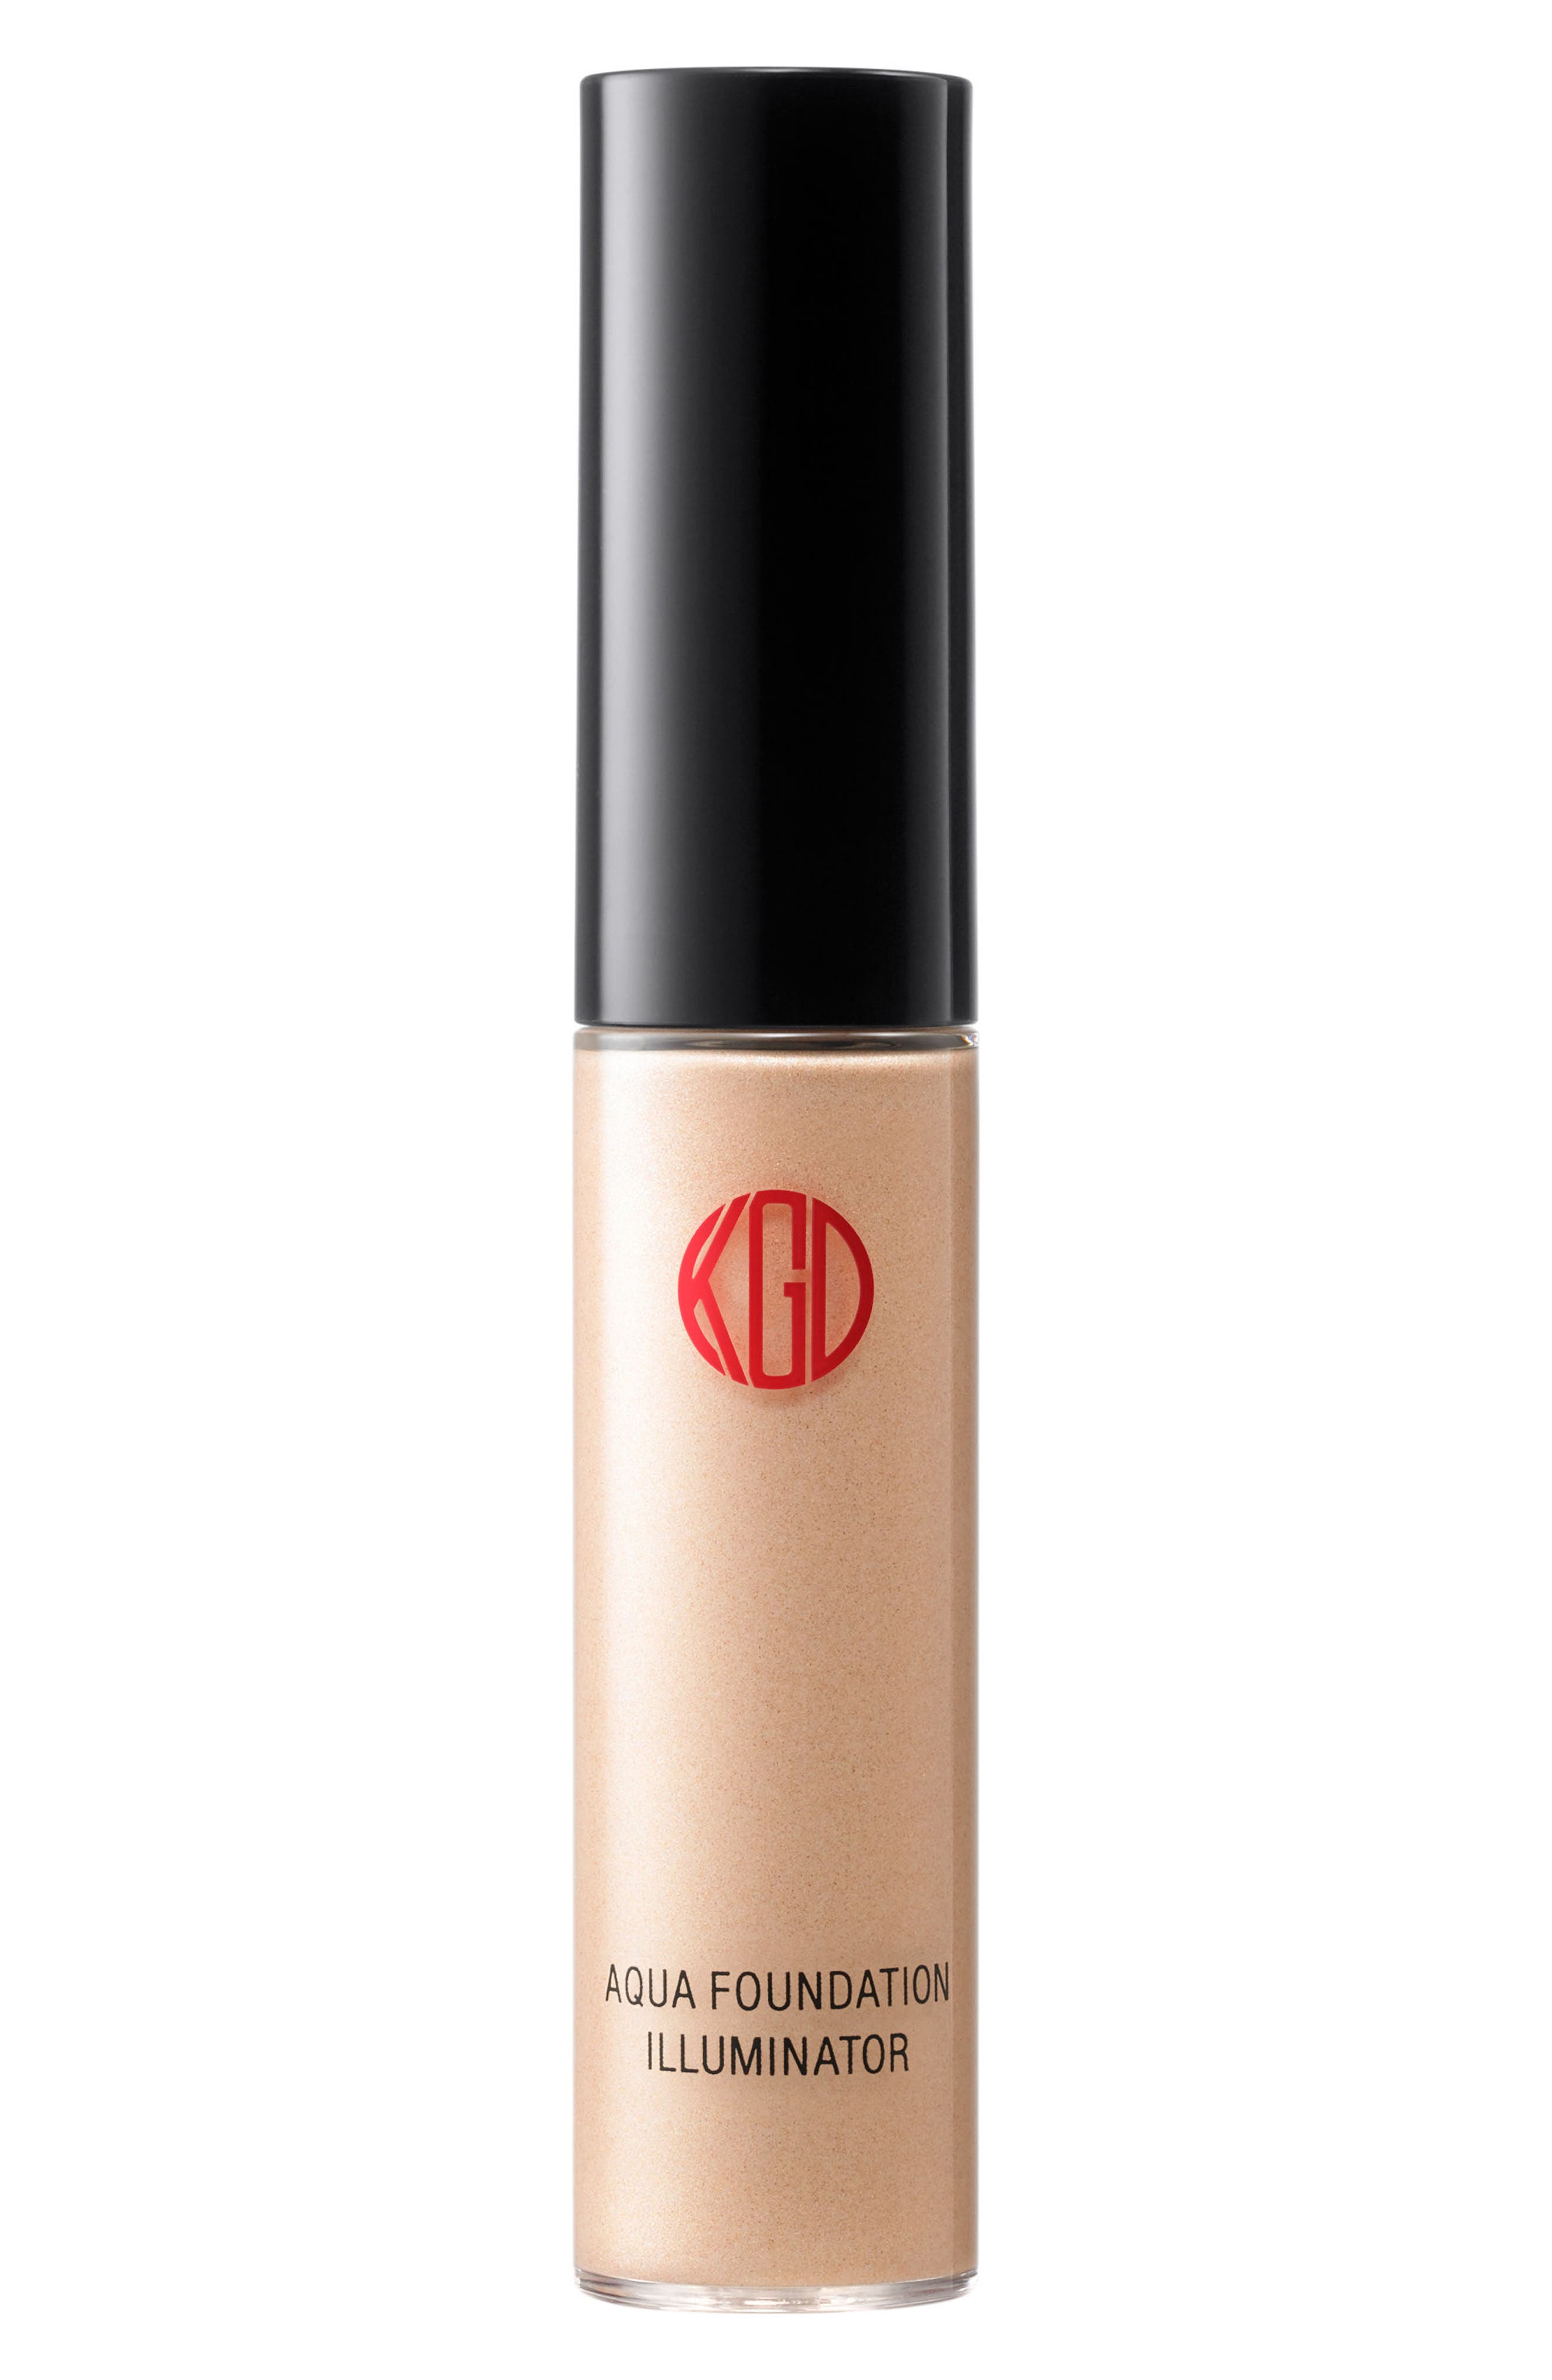 KOH GEN DO AQUA FOUNDATION ILLUMINATOR - 1